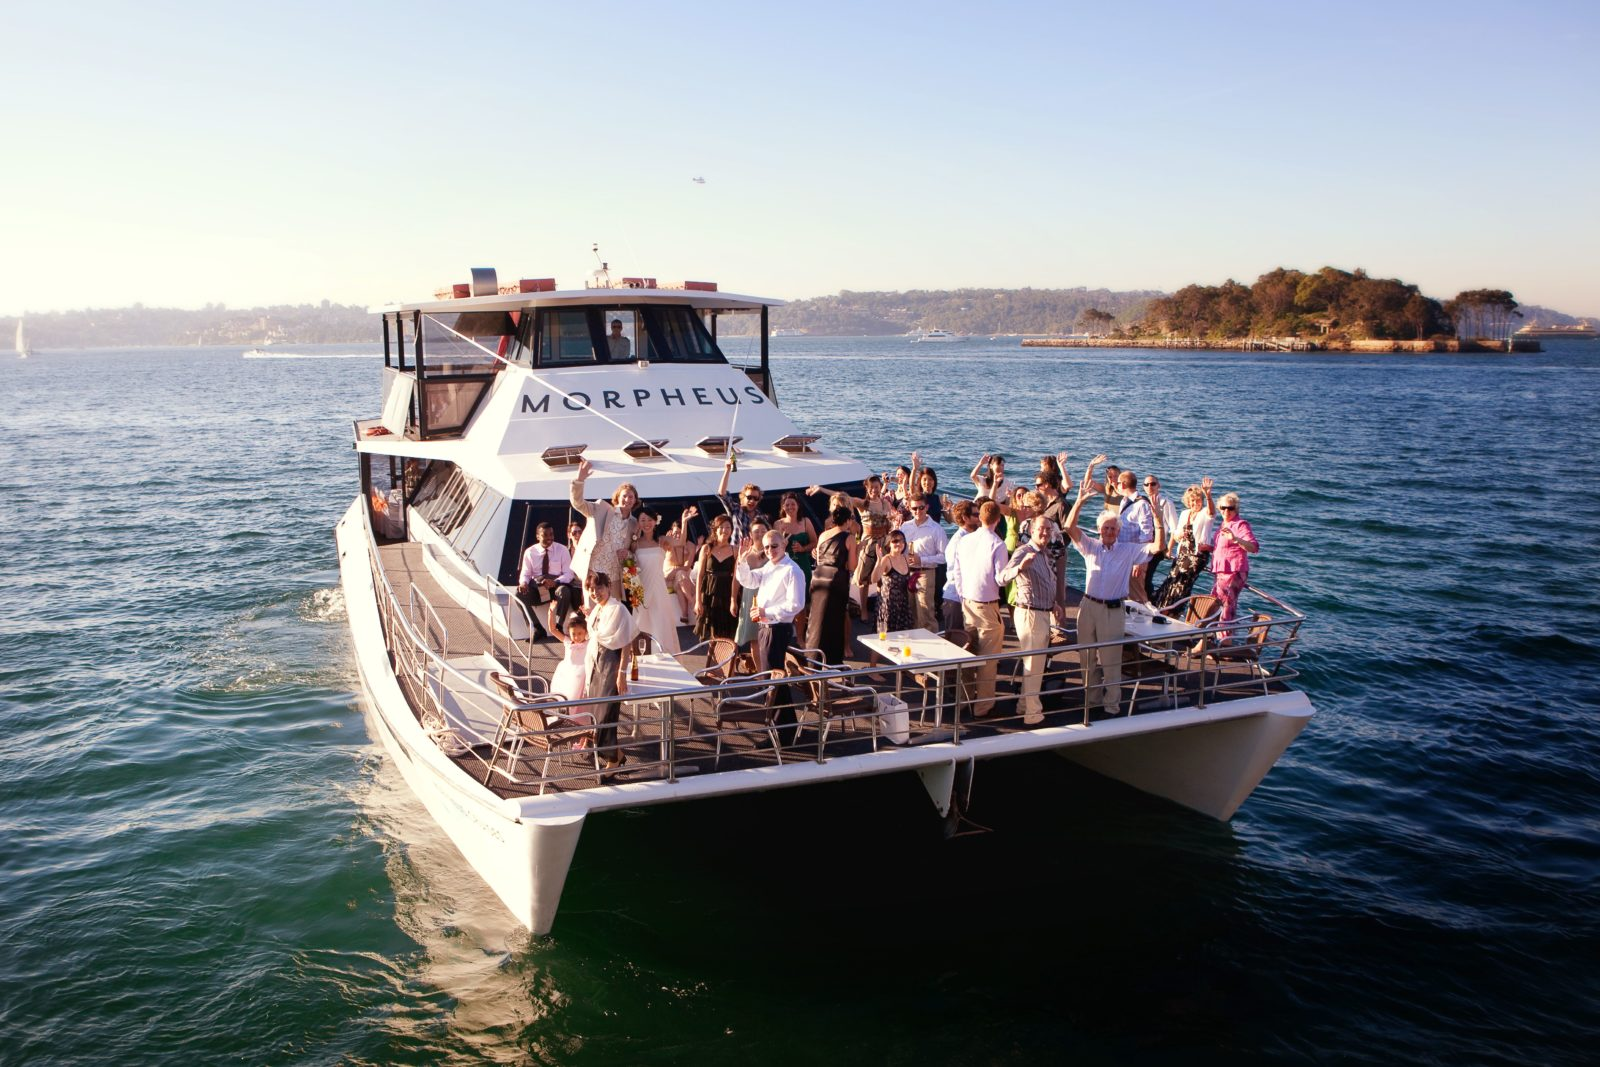 BHS Boat Hire Sydney